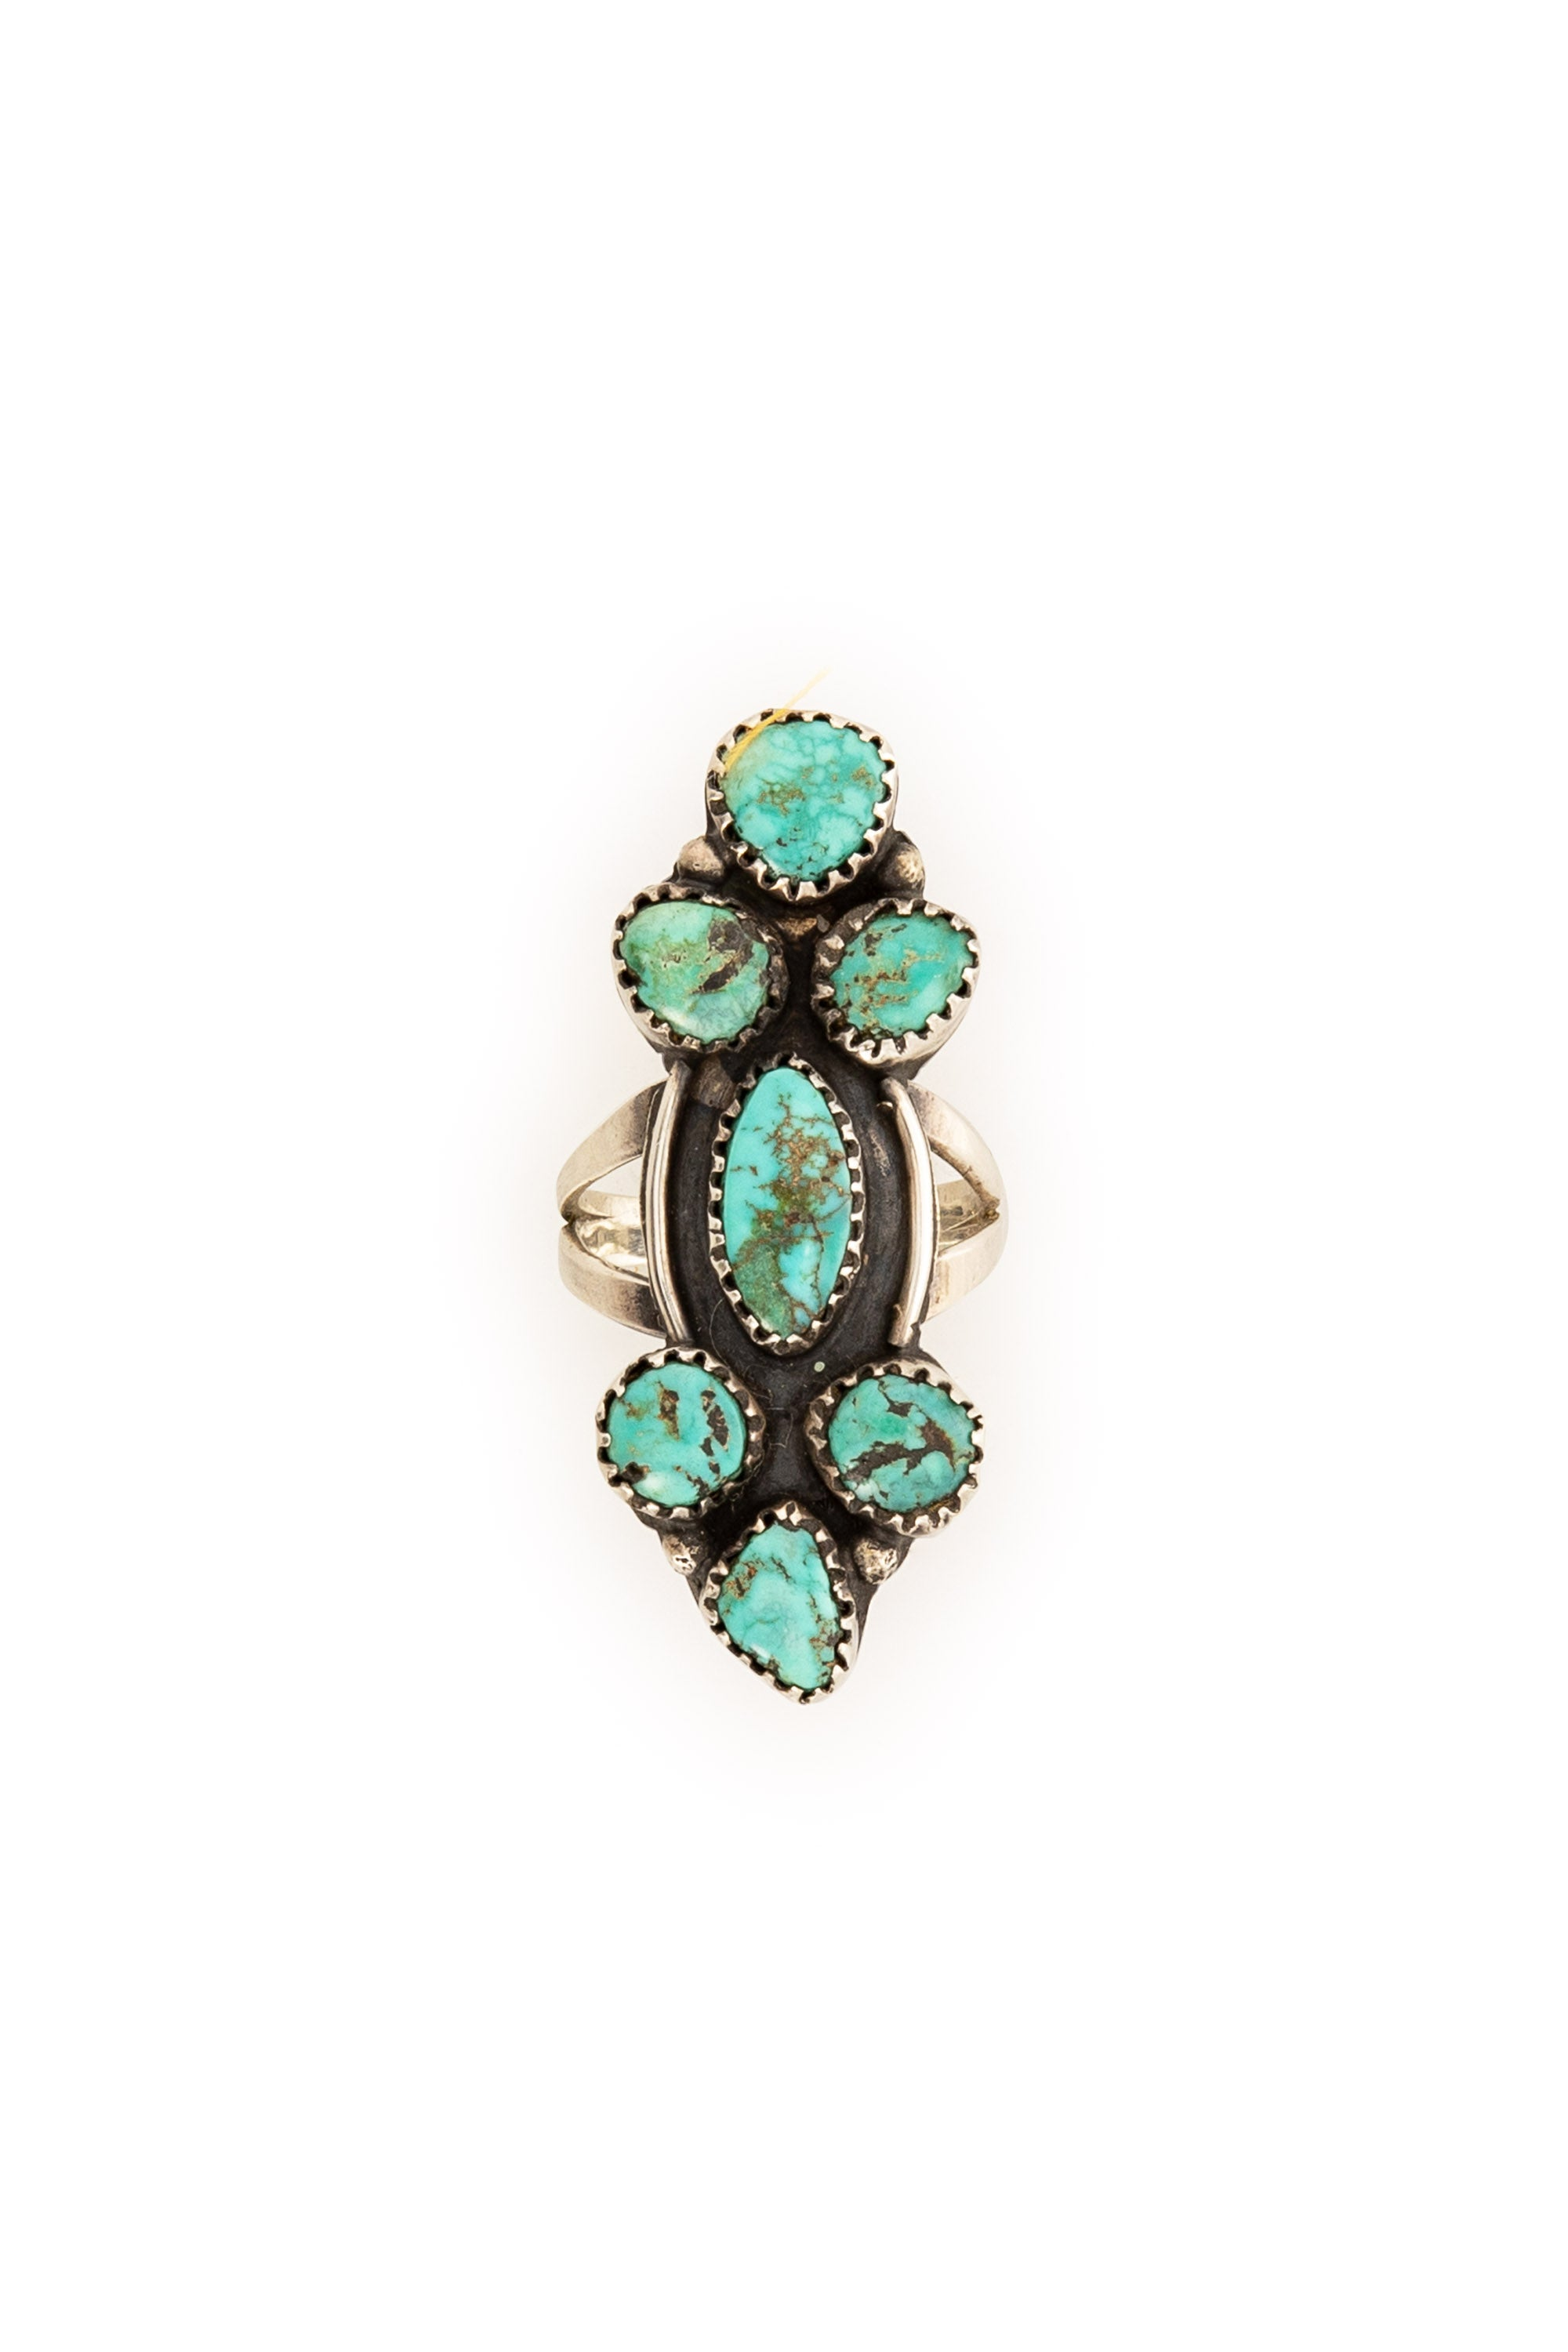 Ring, Turquoise, Multi Stone, Nugget, Vintage, 616